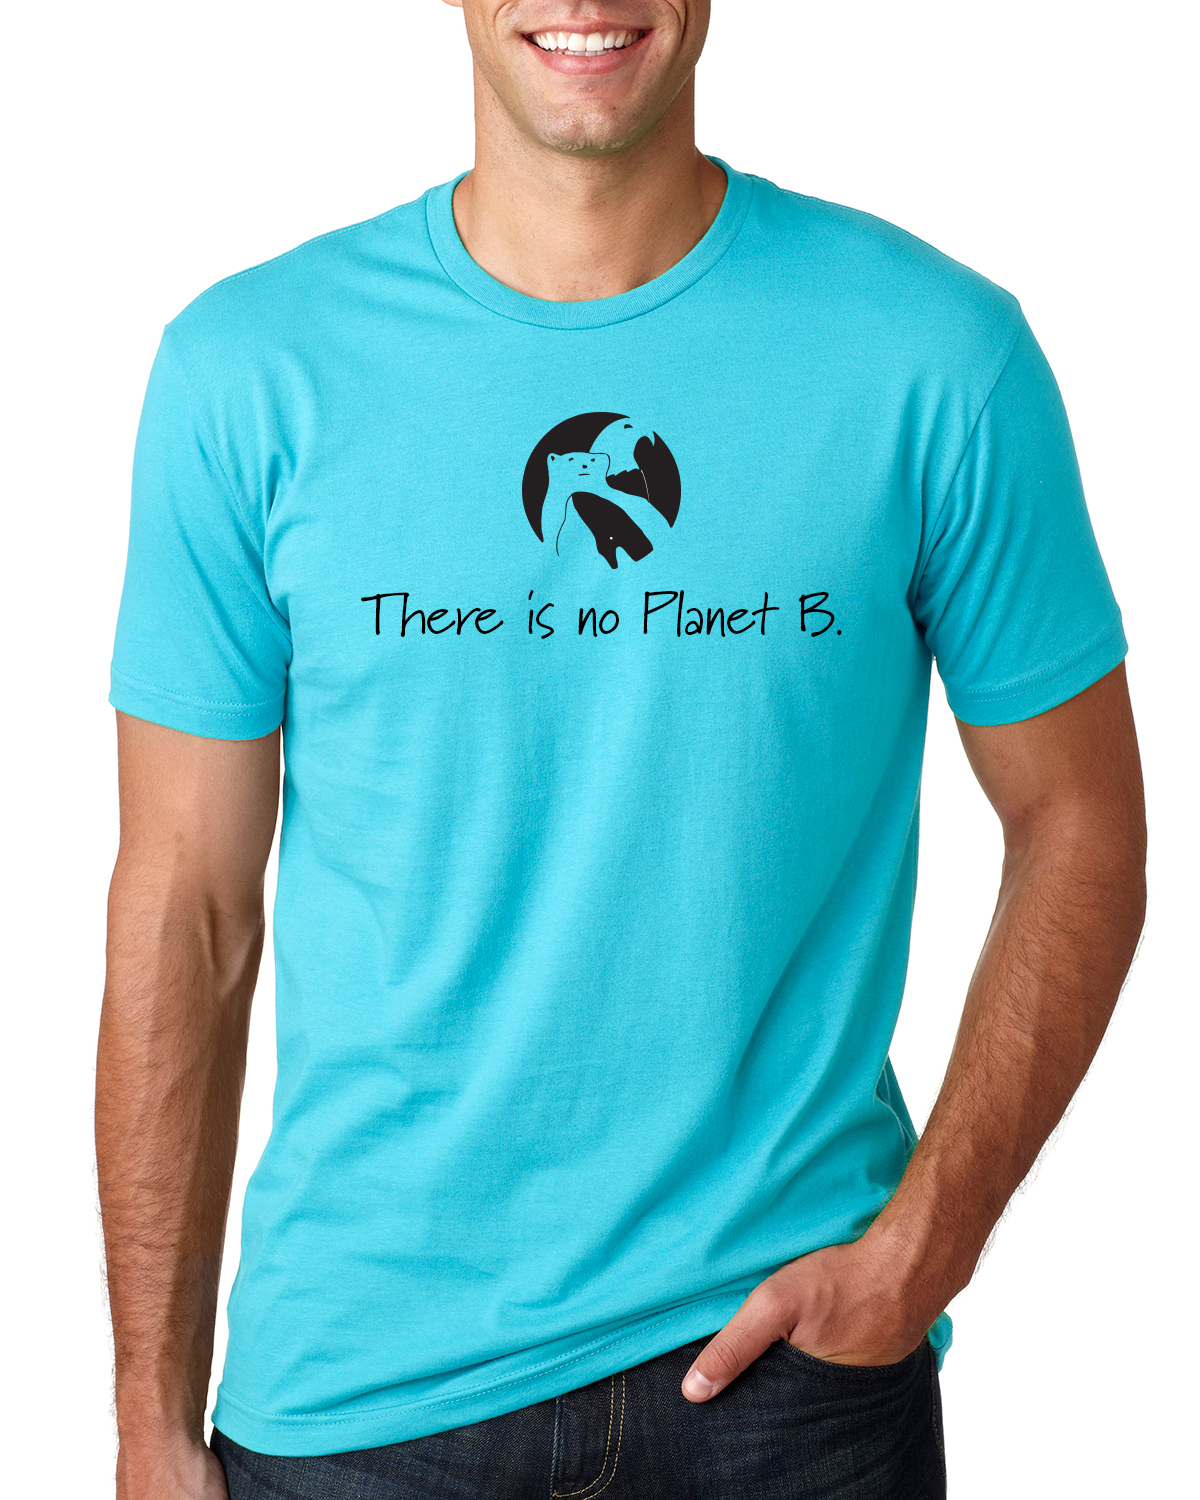 There is No Planet B Short sleeve t-shirt for men/unisex (Tahiti Blue)